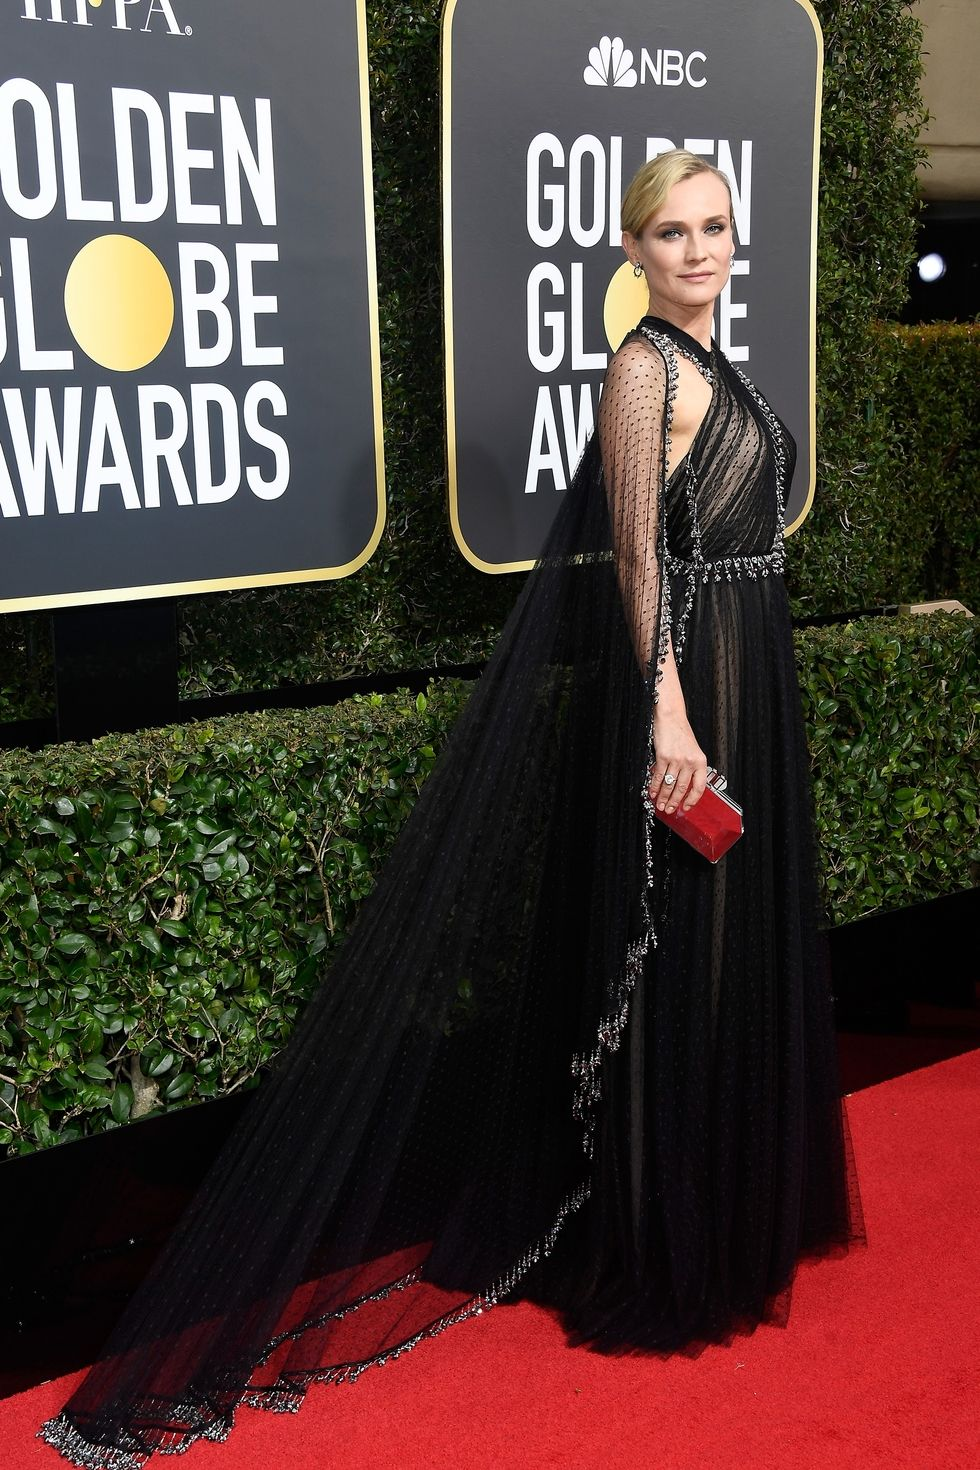 hbz-the-list-golden-globes-2018-diane-kruger-1515378039